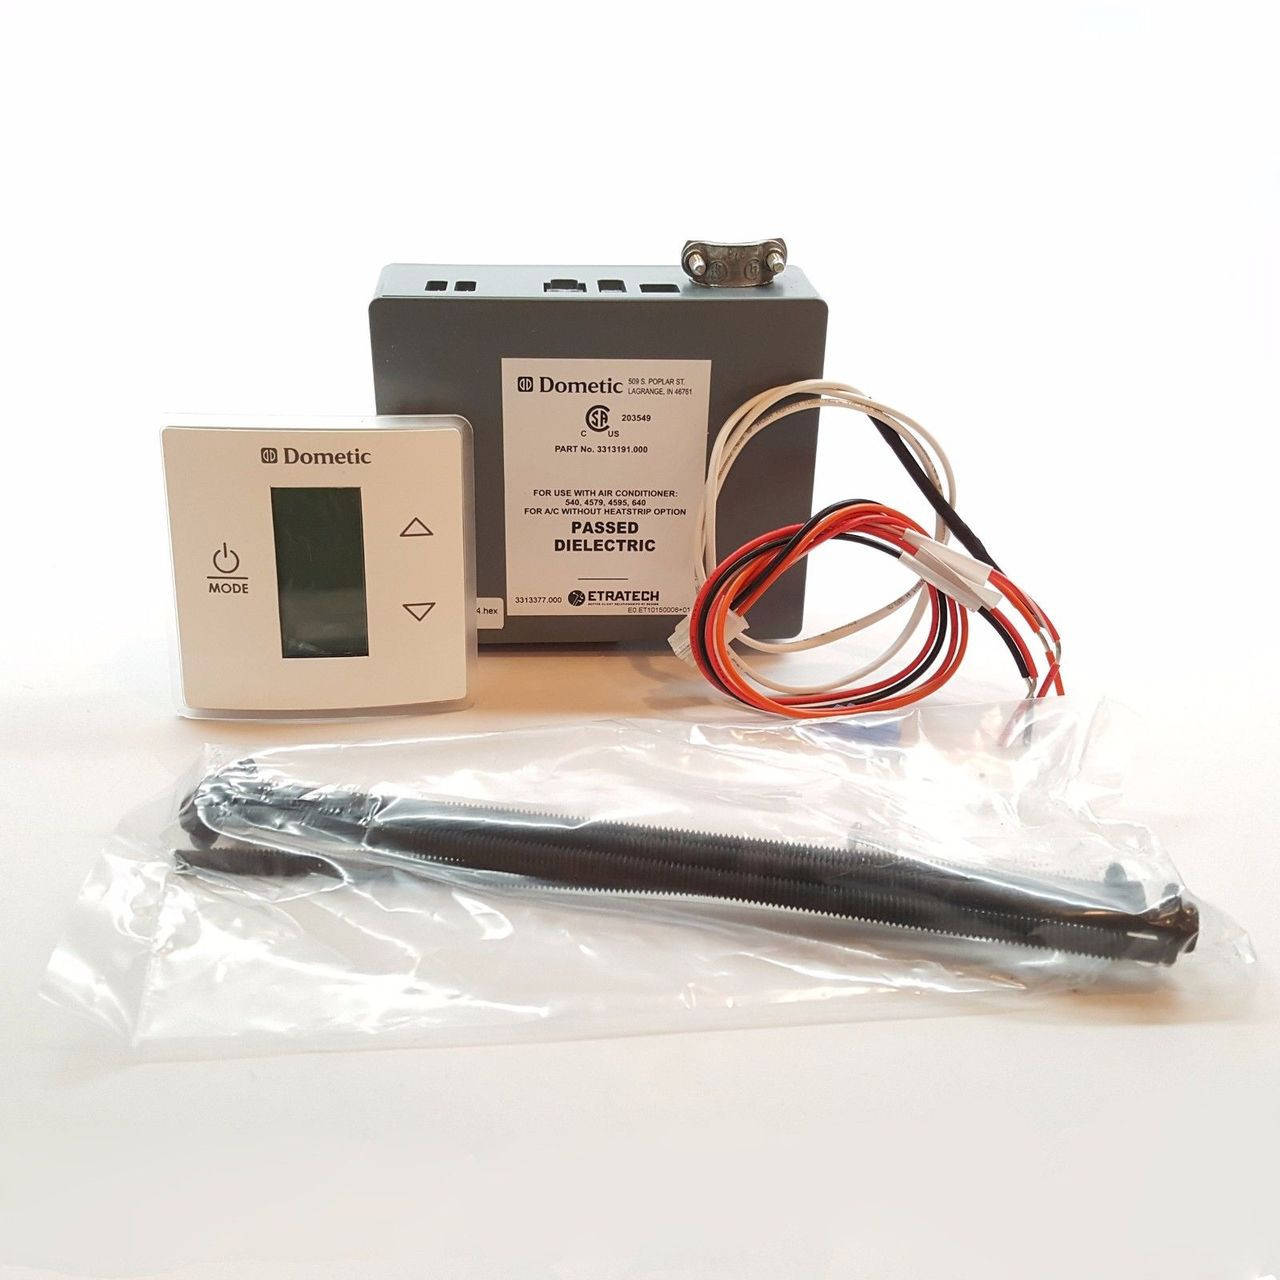 hight resolution of dometic single control kit lcd cool furnace white thermostat 3316230 000